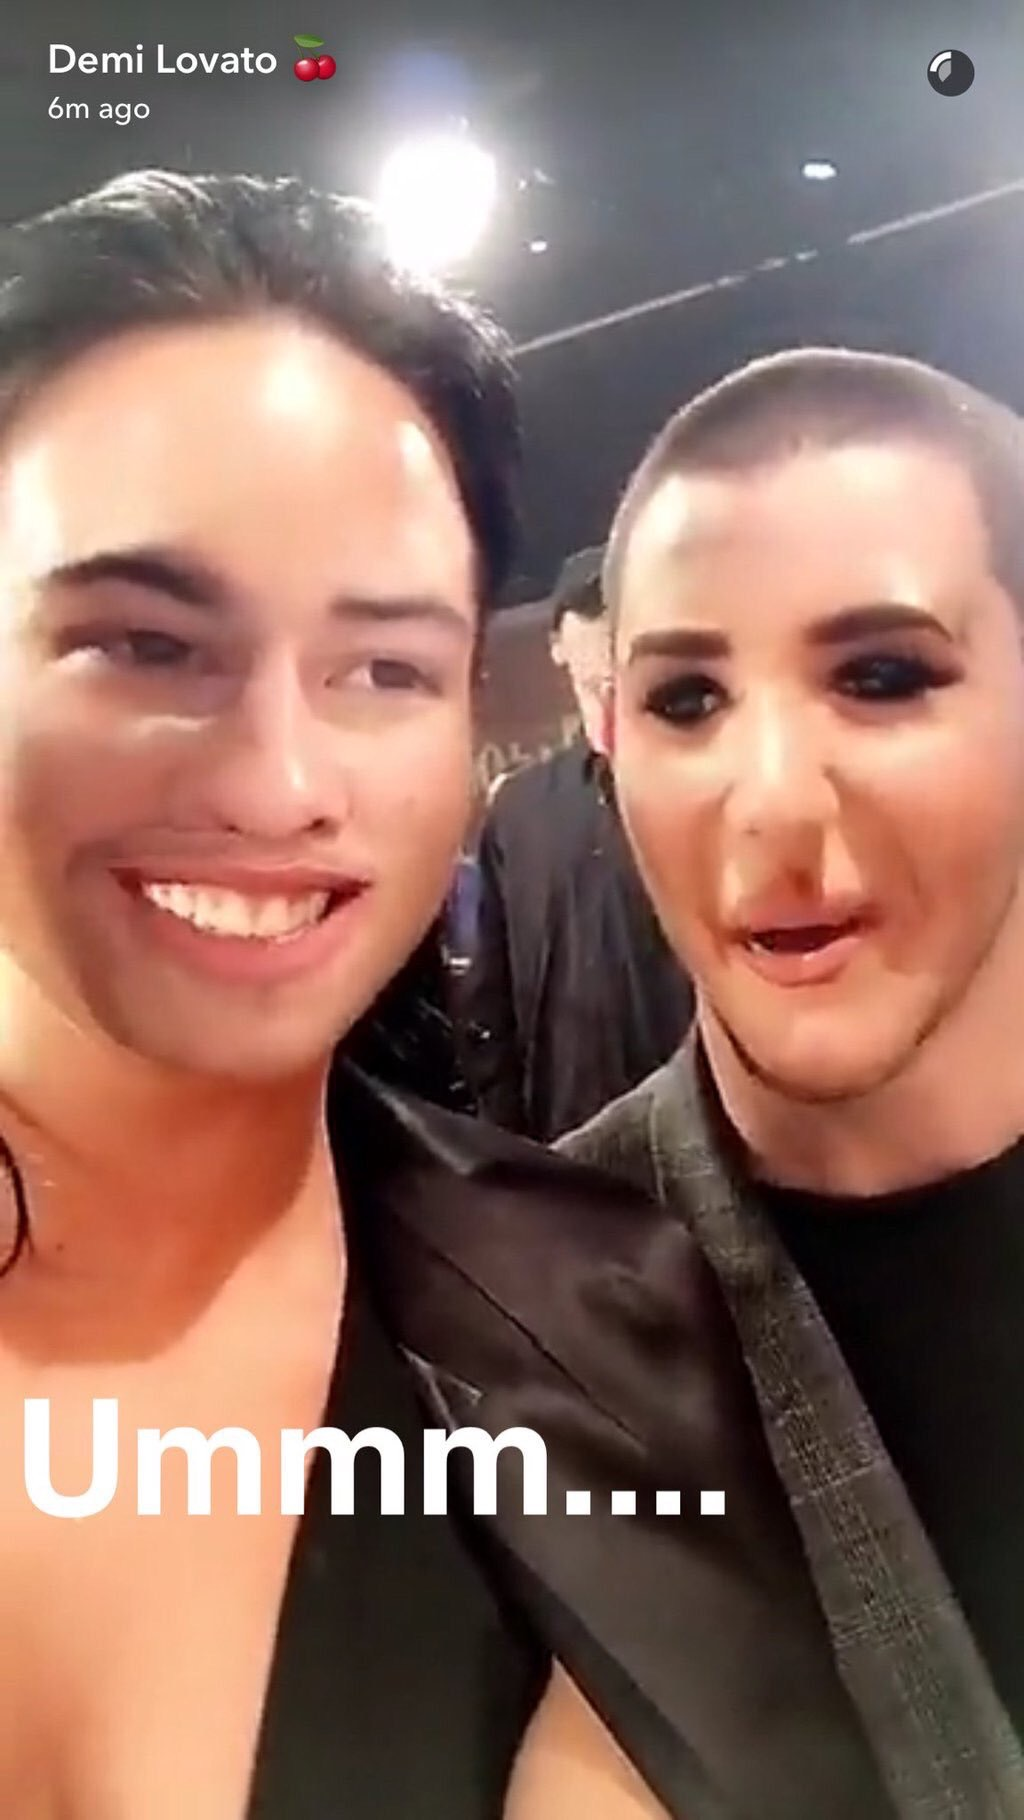 Demi Lovato and Nick Jonas face swap